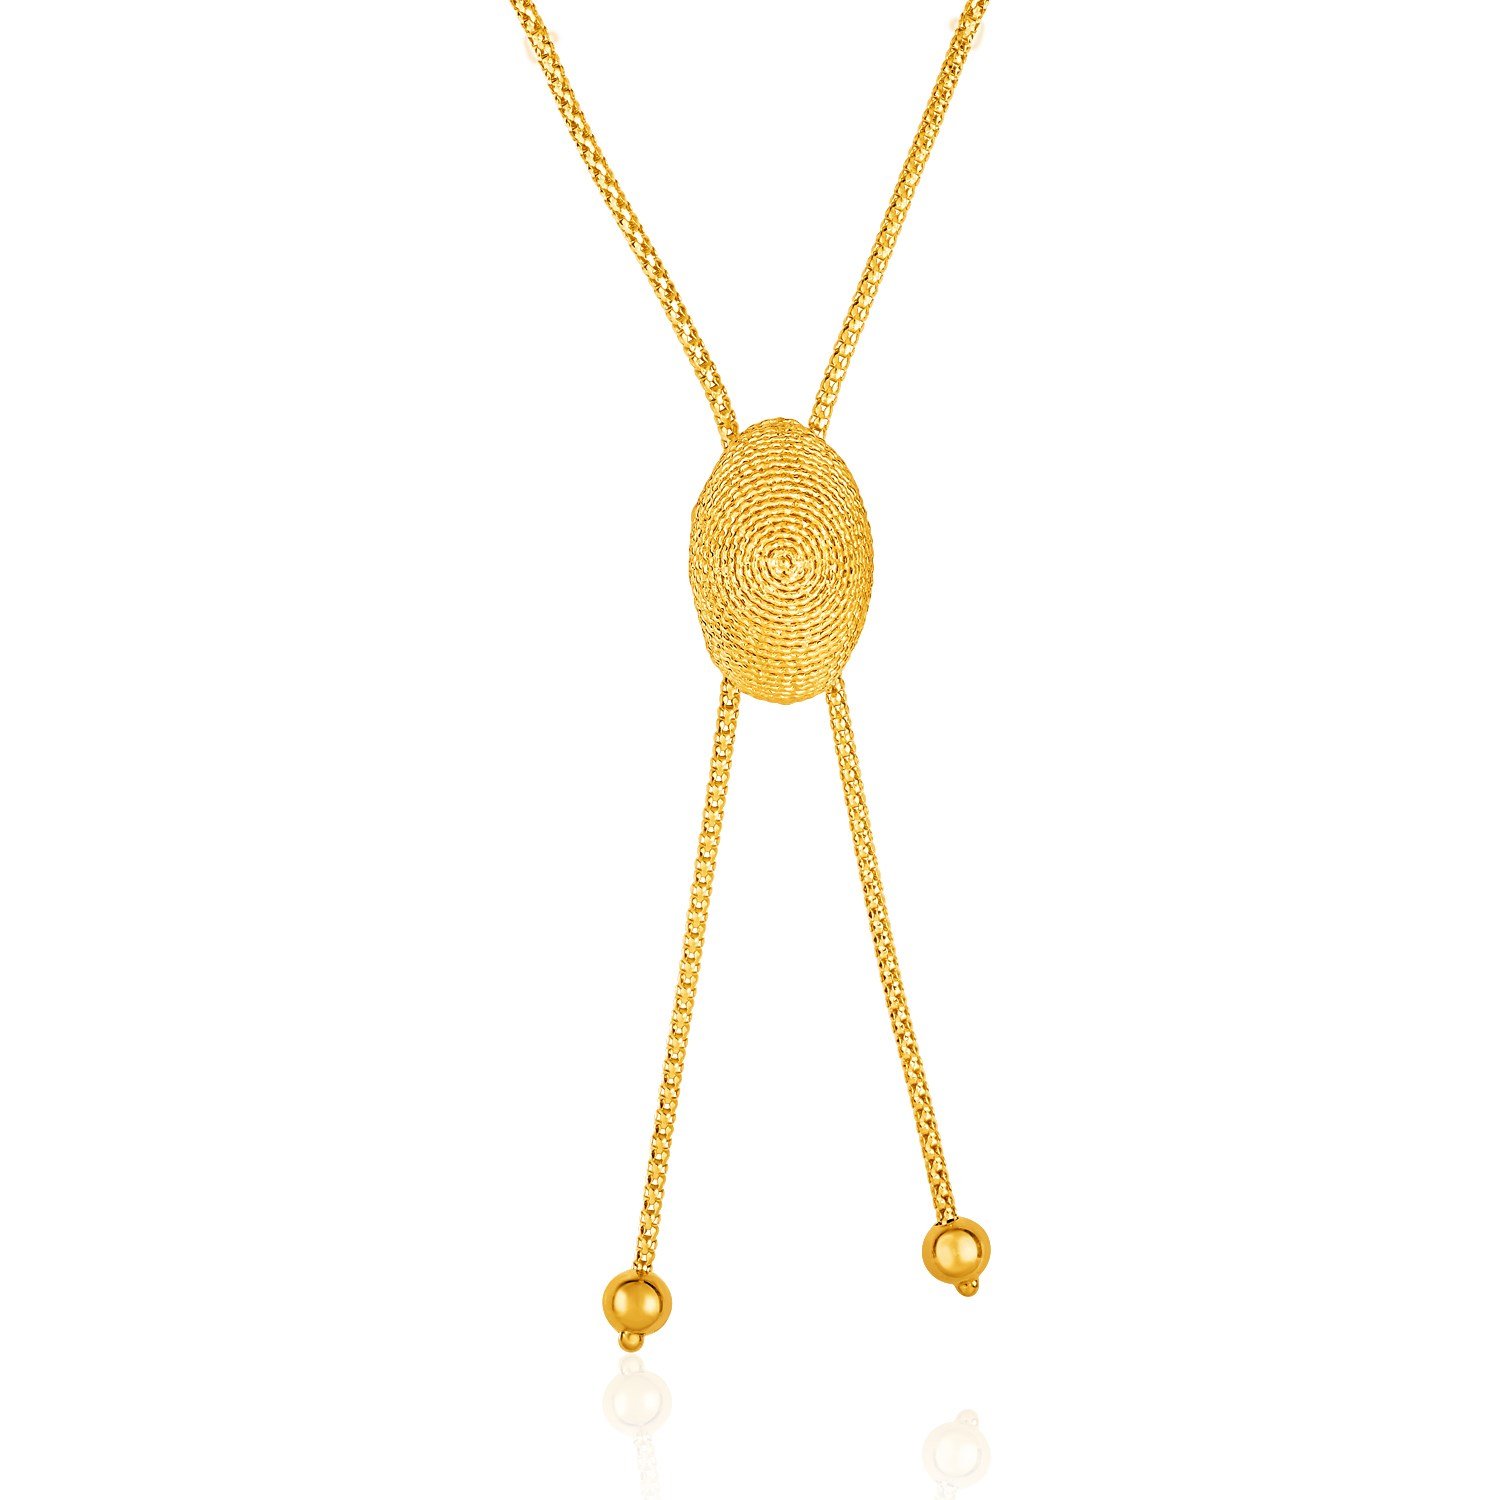 6450dd038e806 14k Yellow Gold Adjustable Lariat Necklace with Textured Oval Dome. Close